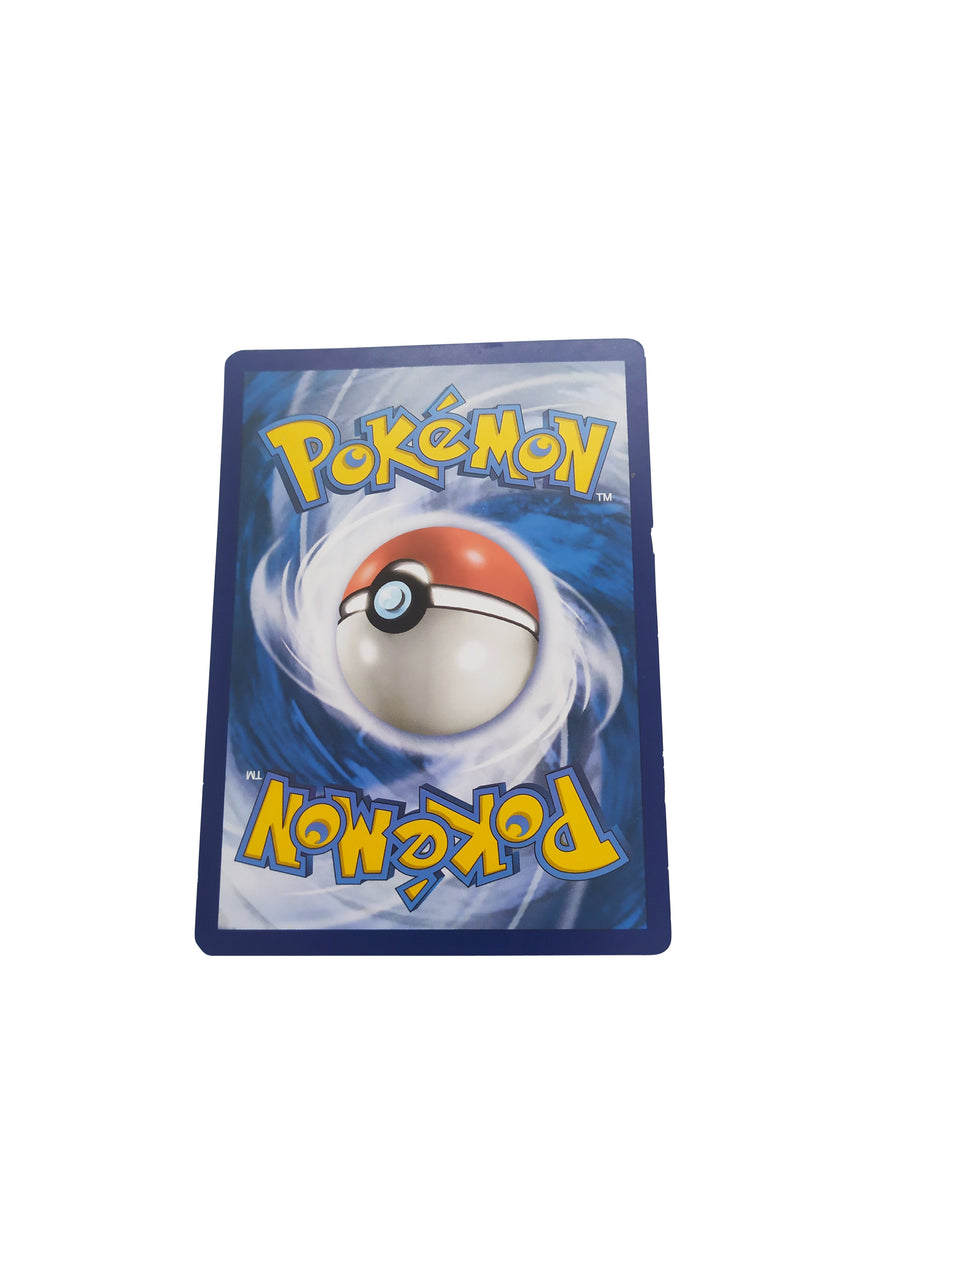 9 lot of pokemon cards - included : Wailmer , Magikarp , Froakie , Pyukumuku , Dewpider , Poliwag ,Sneasel , Psyduck